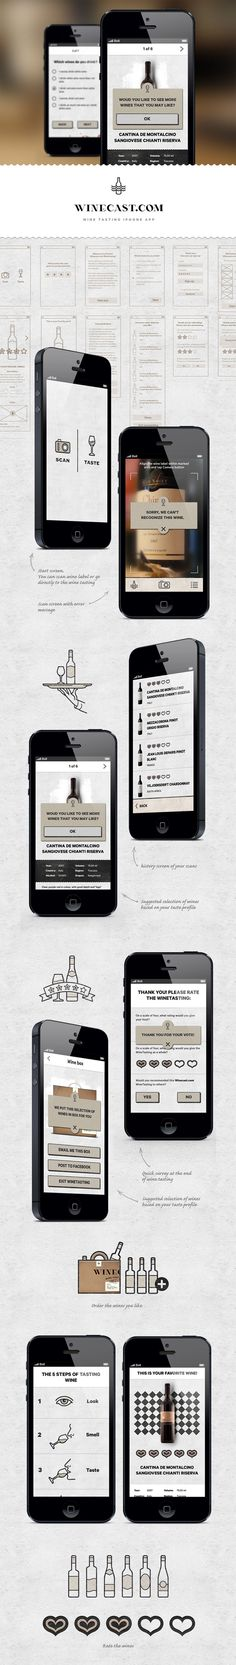 Winetasting iPhone app for Winecast.com by Denis Olenik, via Behance *** Scanning wines and wine tasting iPhone app for Winecast.com (Netherlands). Done: UX and UI design.